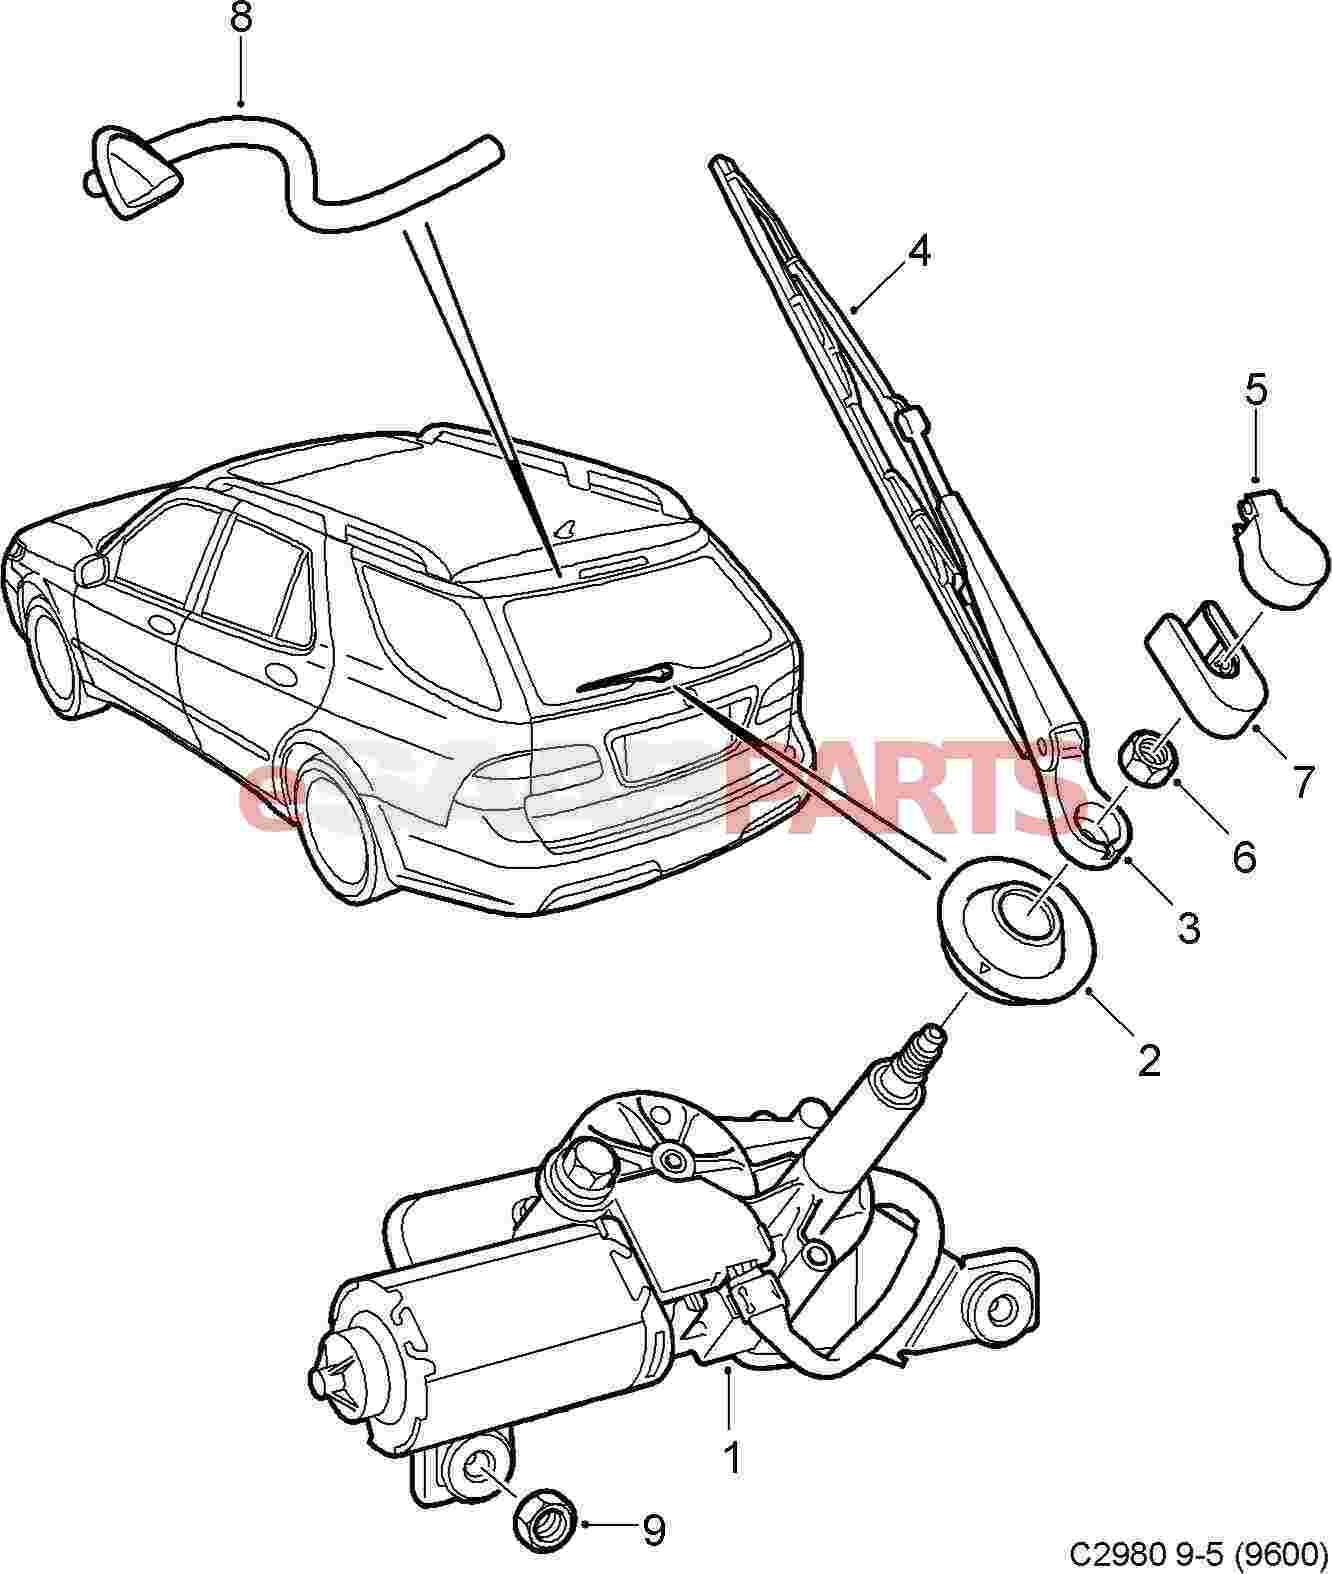 Saab 9 5 Wiper Wiring Diagram. Saab Wiring Diagram 2004